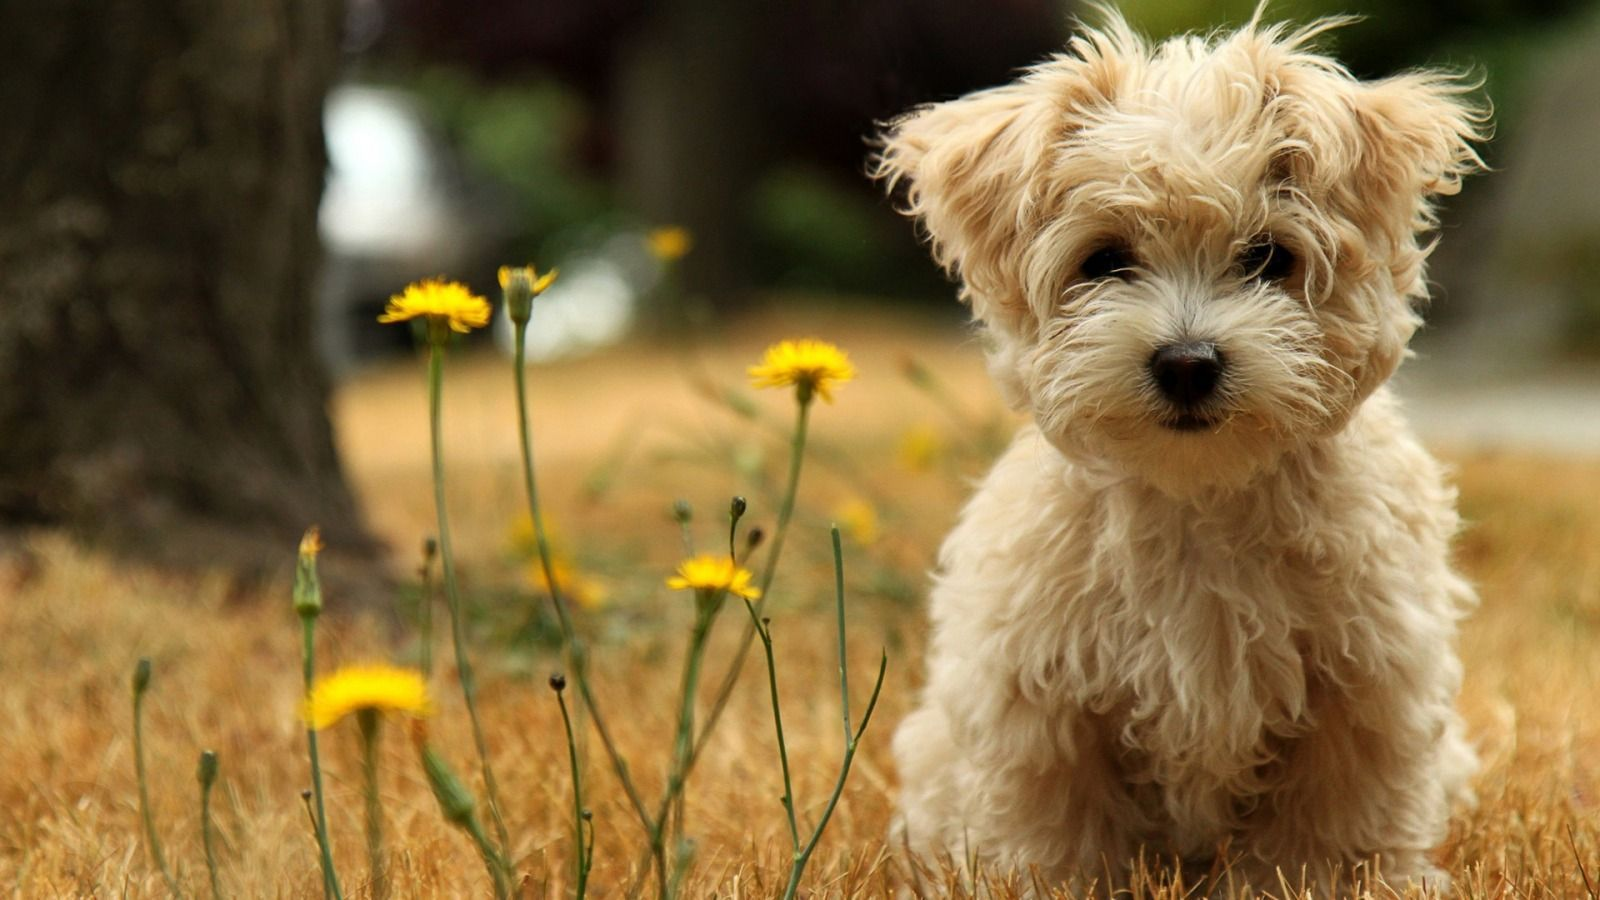 Puppy HD Wallpaper